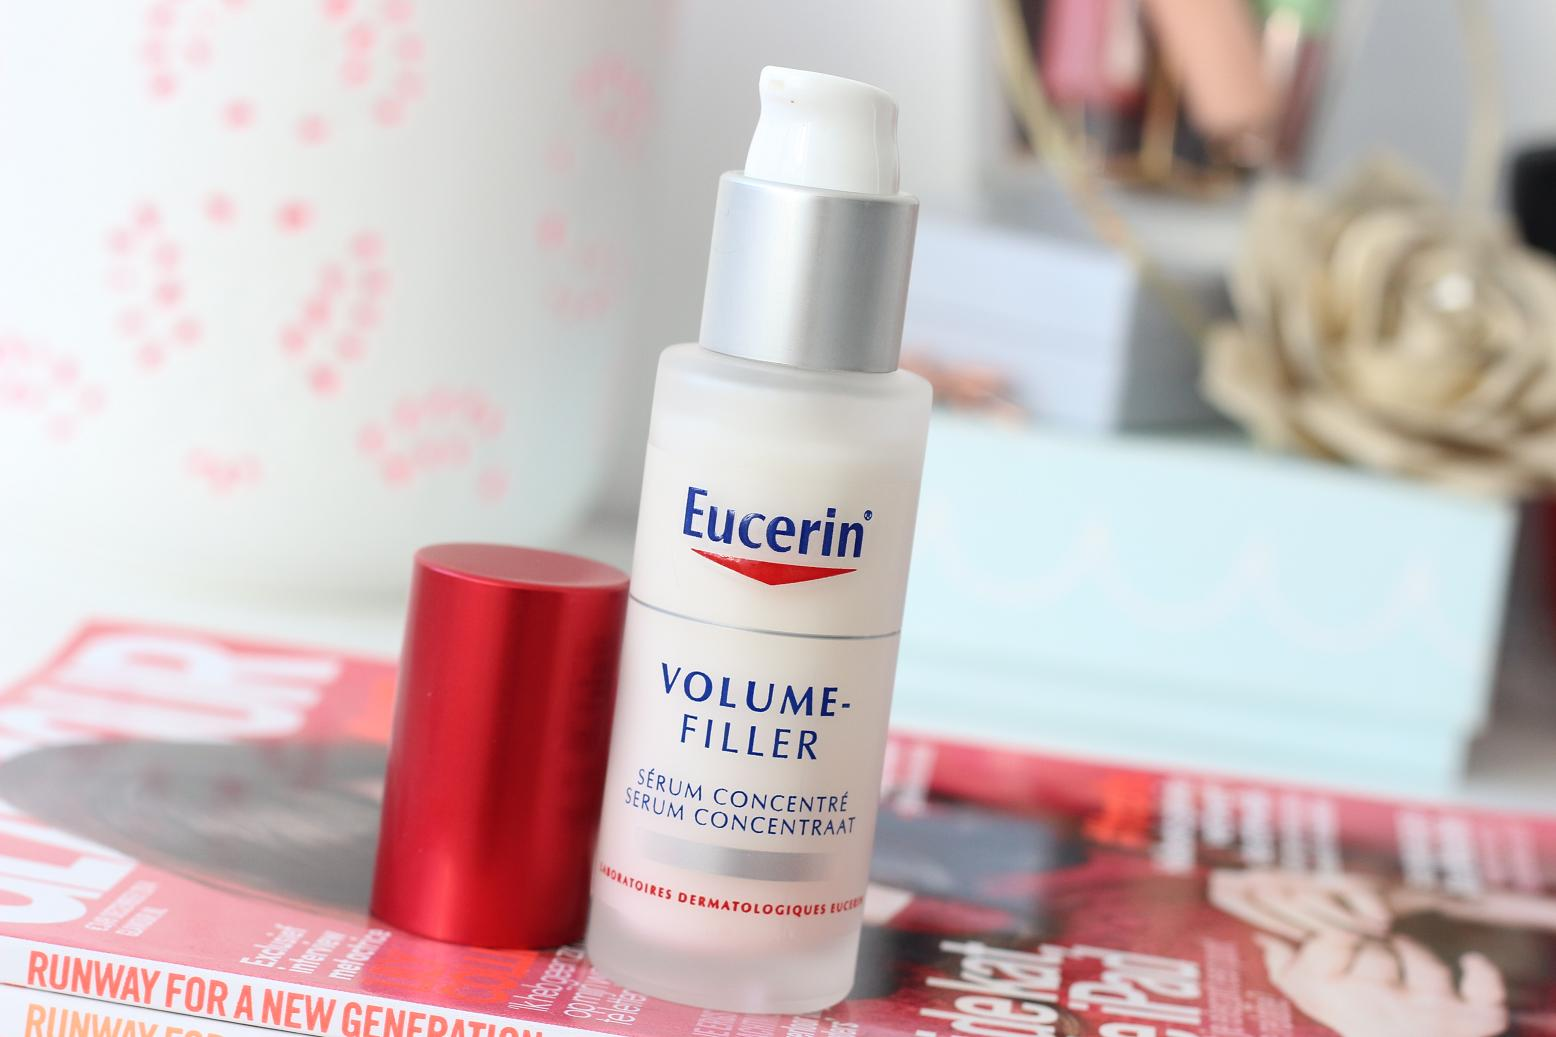 Eucerin Volume-Filler Serum